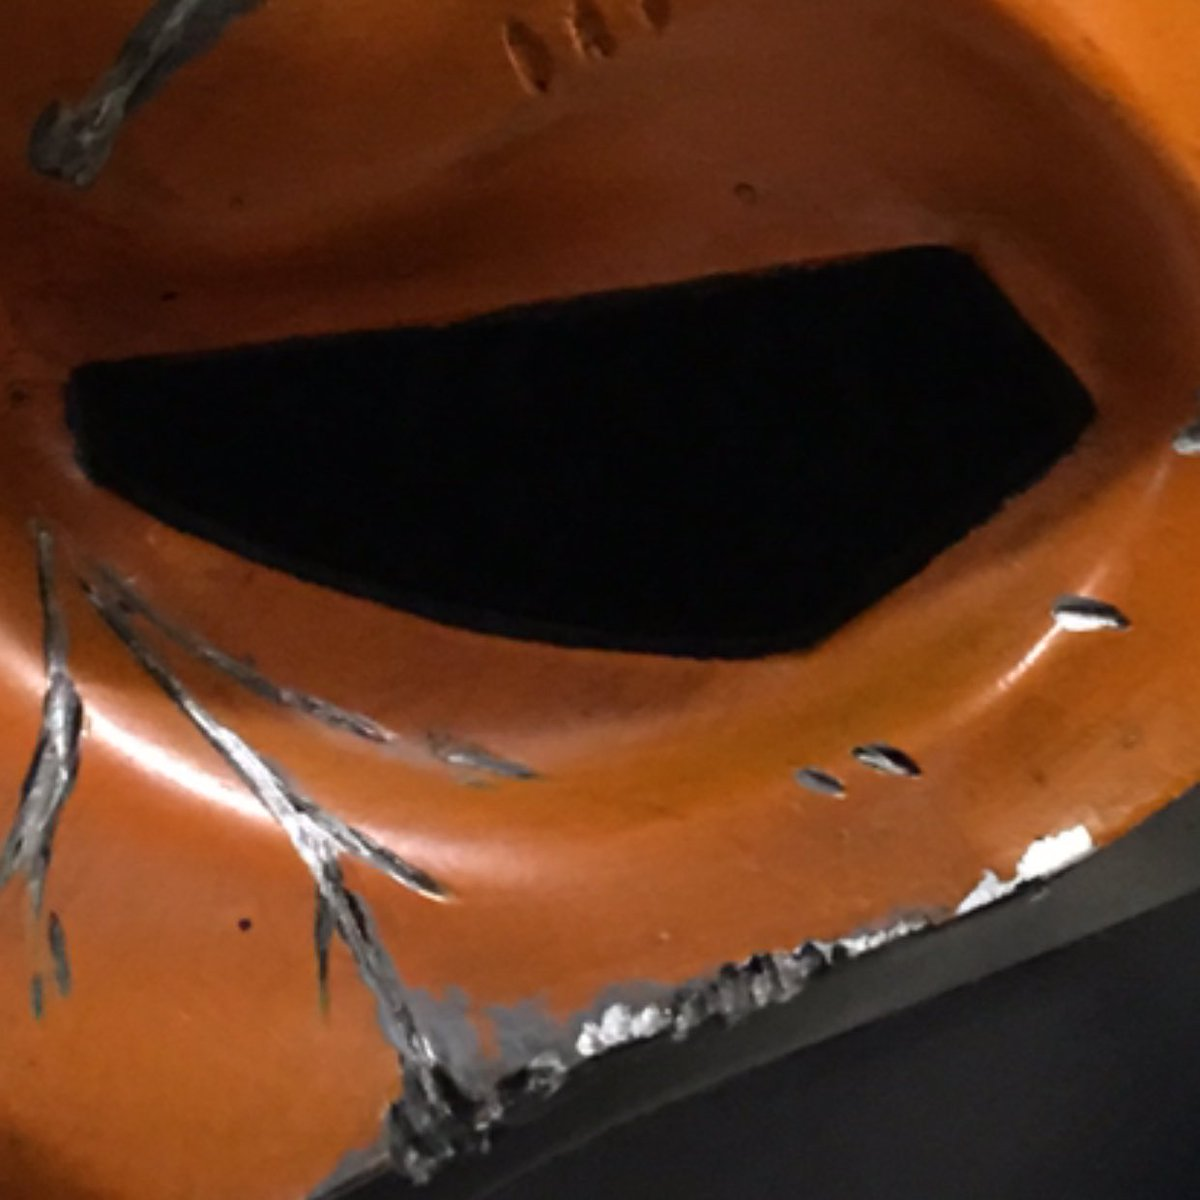 Joe Manganiello Teases Battle-Scarred Deathstroke For Upcoming Movie